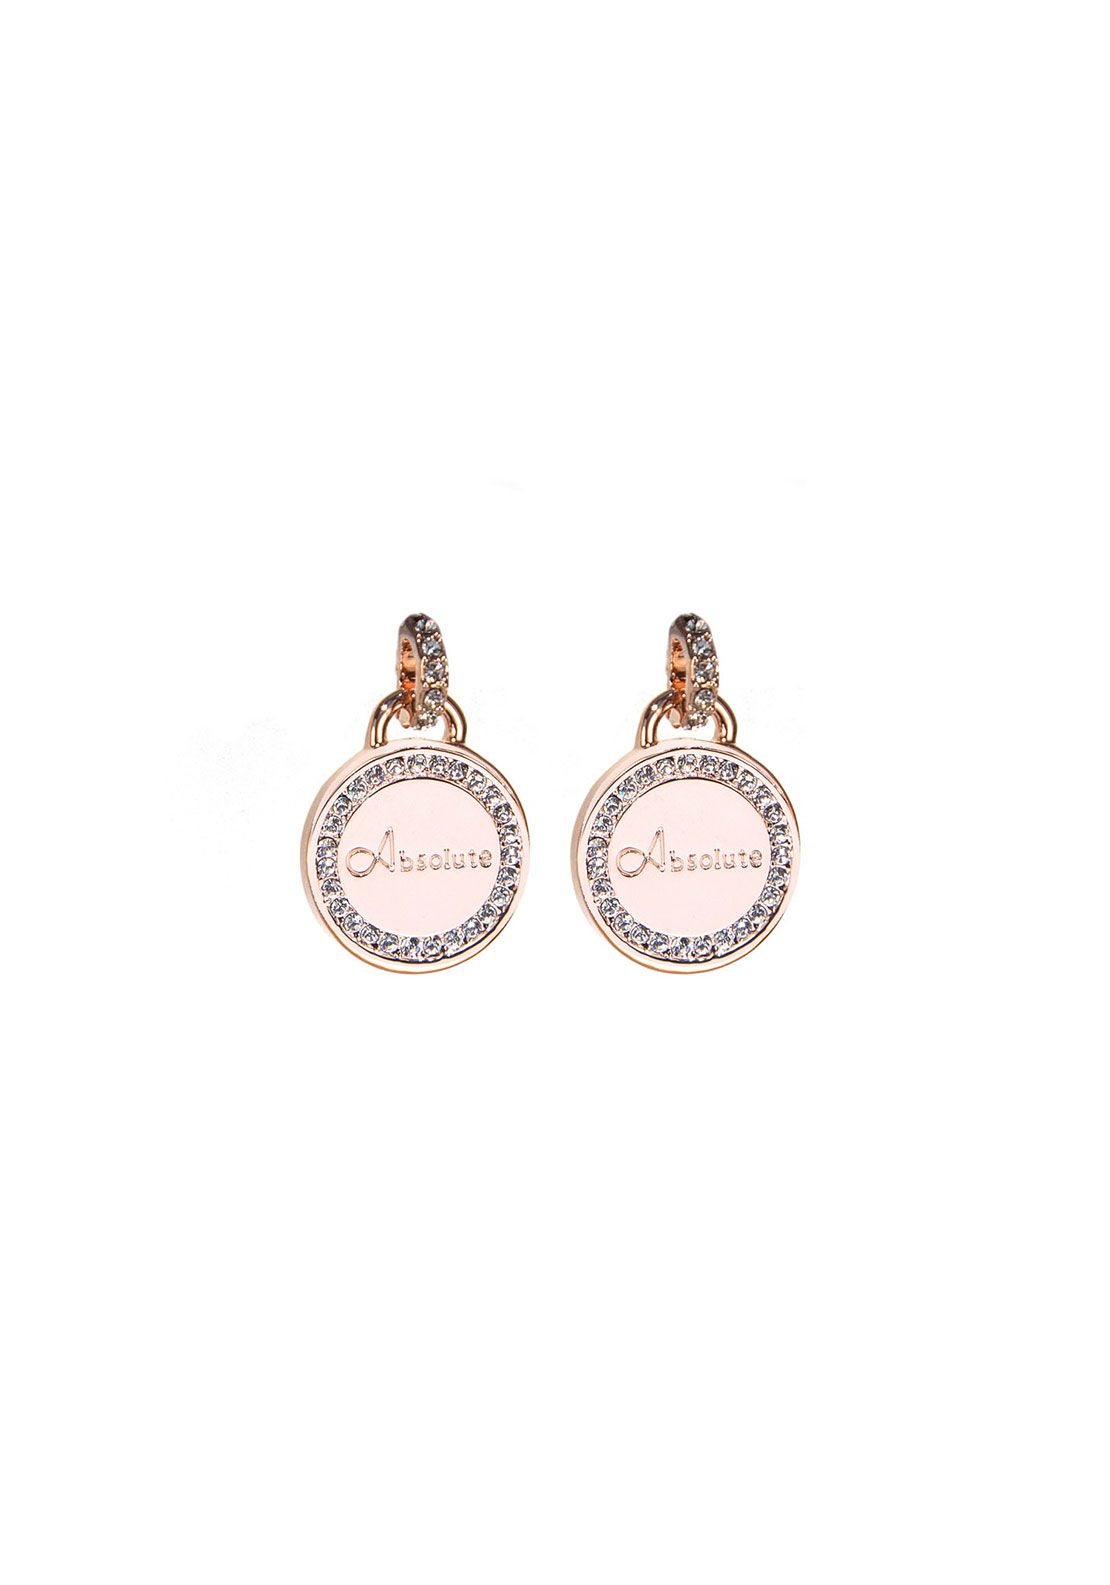 Absolute Jewellery Branded Drop Earrings